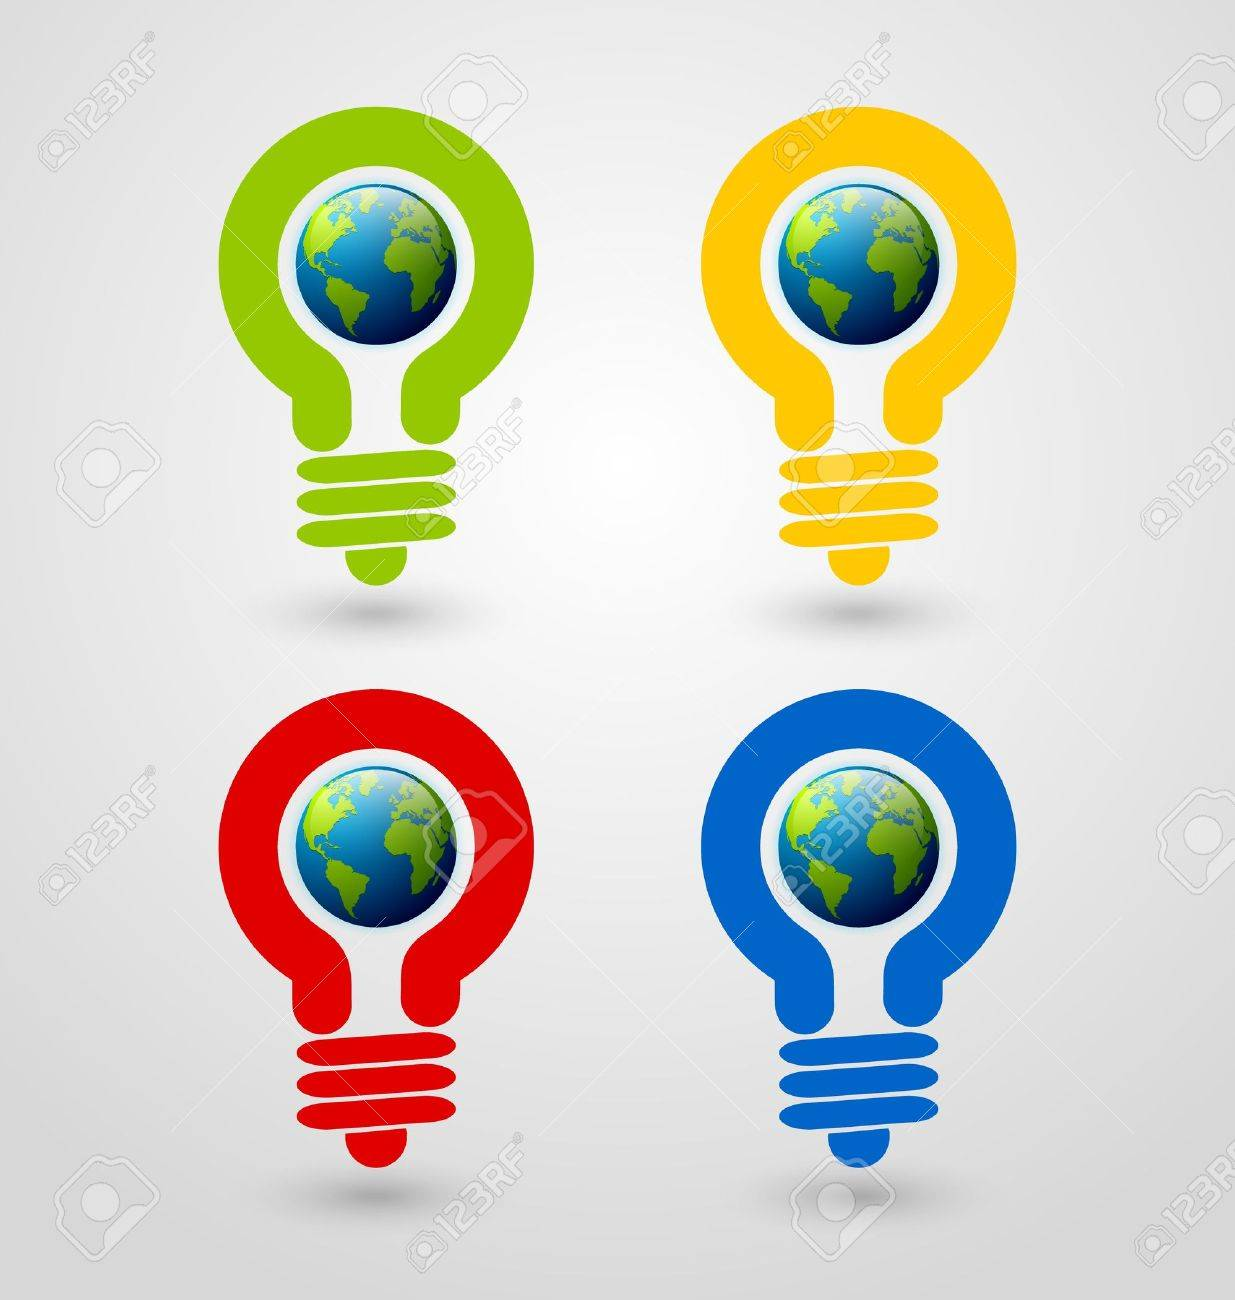 Set of ecology and saving energy icons with light bulb and planet Earth Stock Vector - 15191585